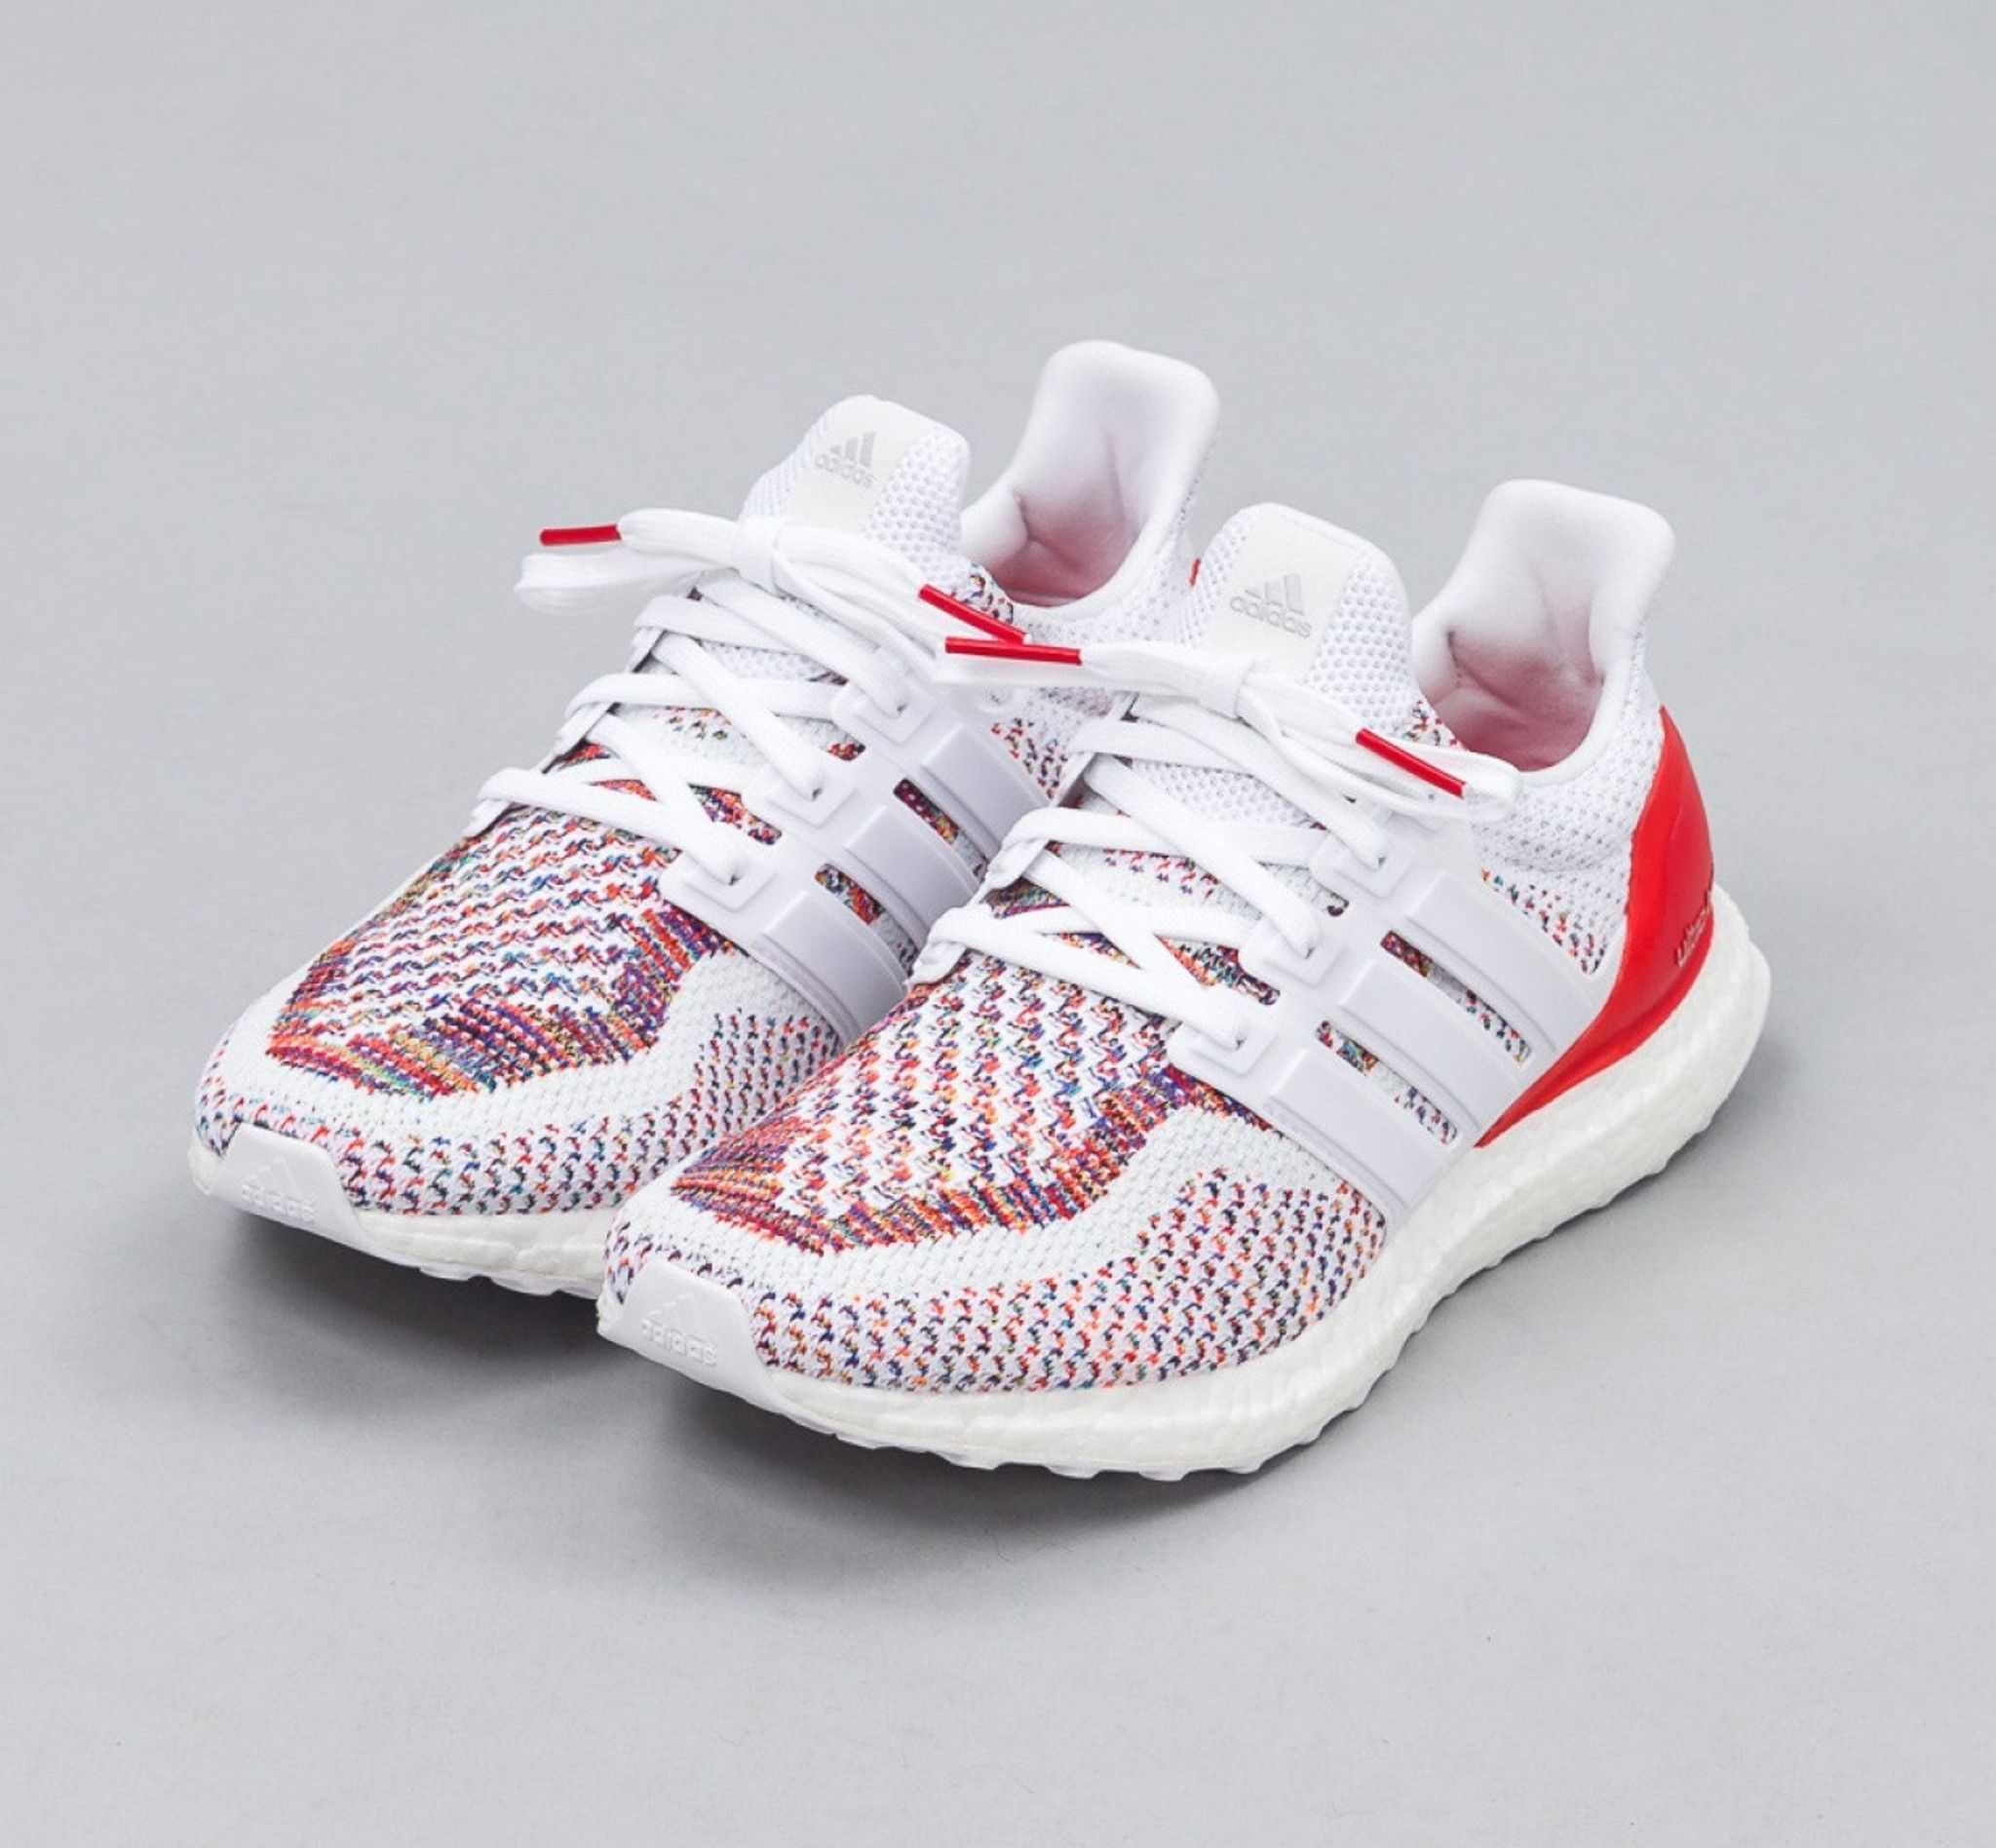 09fbc884b7825 Adidas Ultra Boost M Multi Color 2.0 Size Red White Multicolor BB3911  Ultraboost